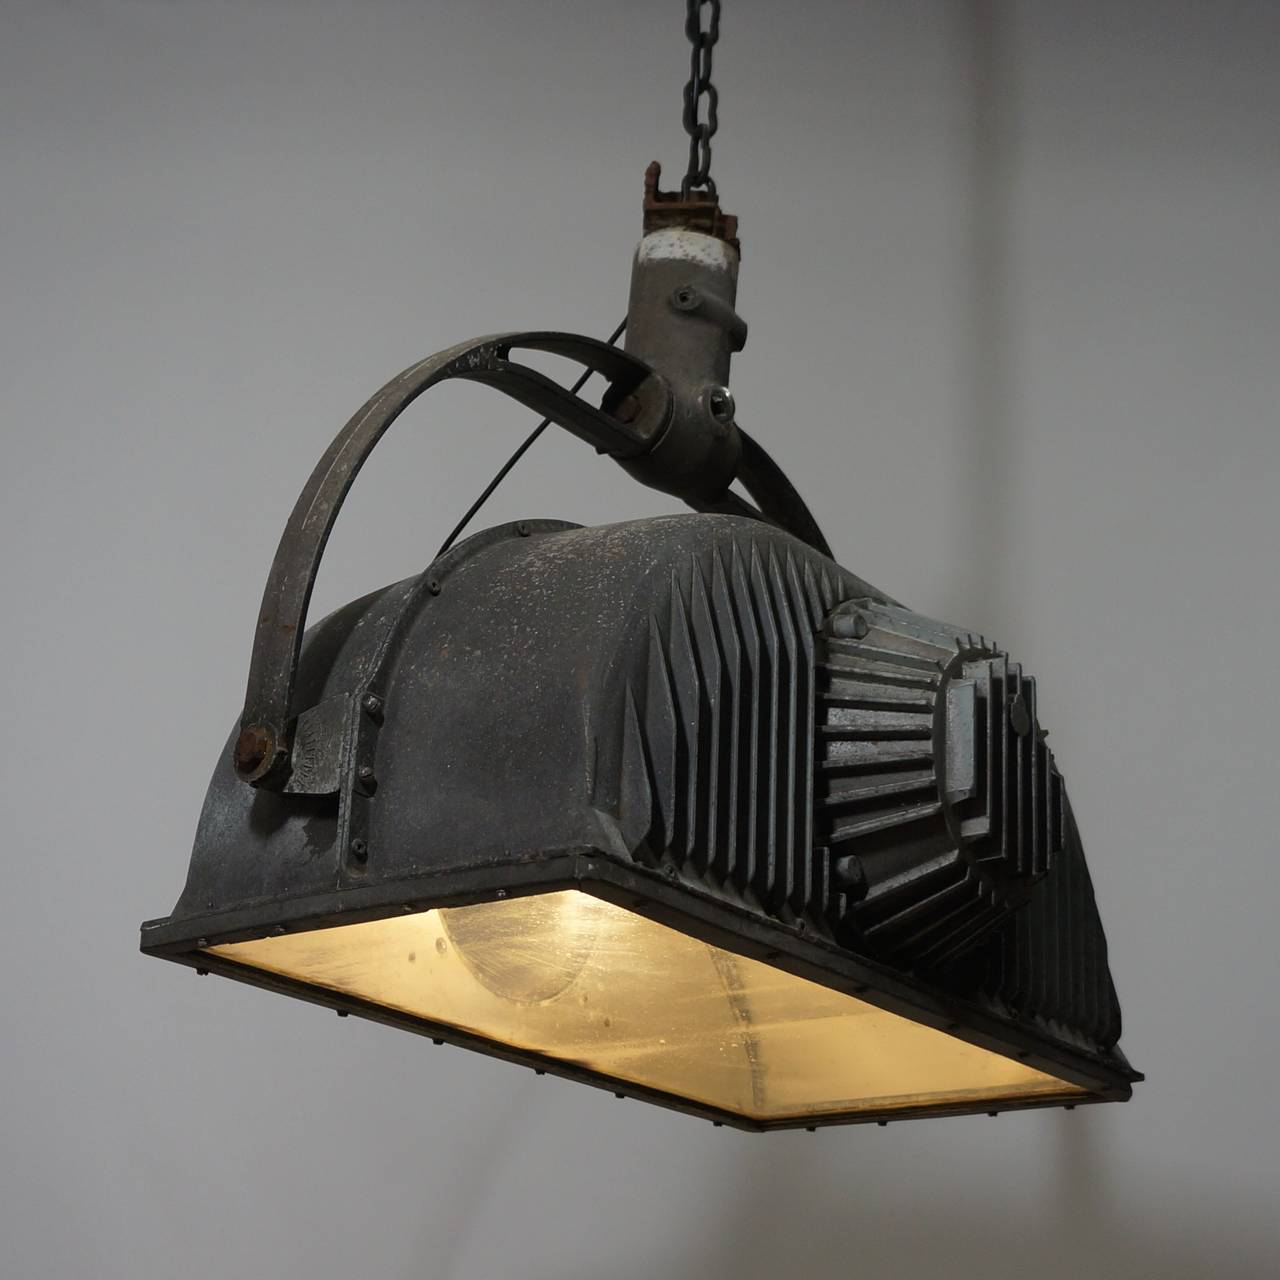 French Large Industrial Ceiling Light Fixture For Sale